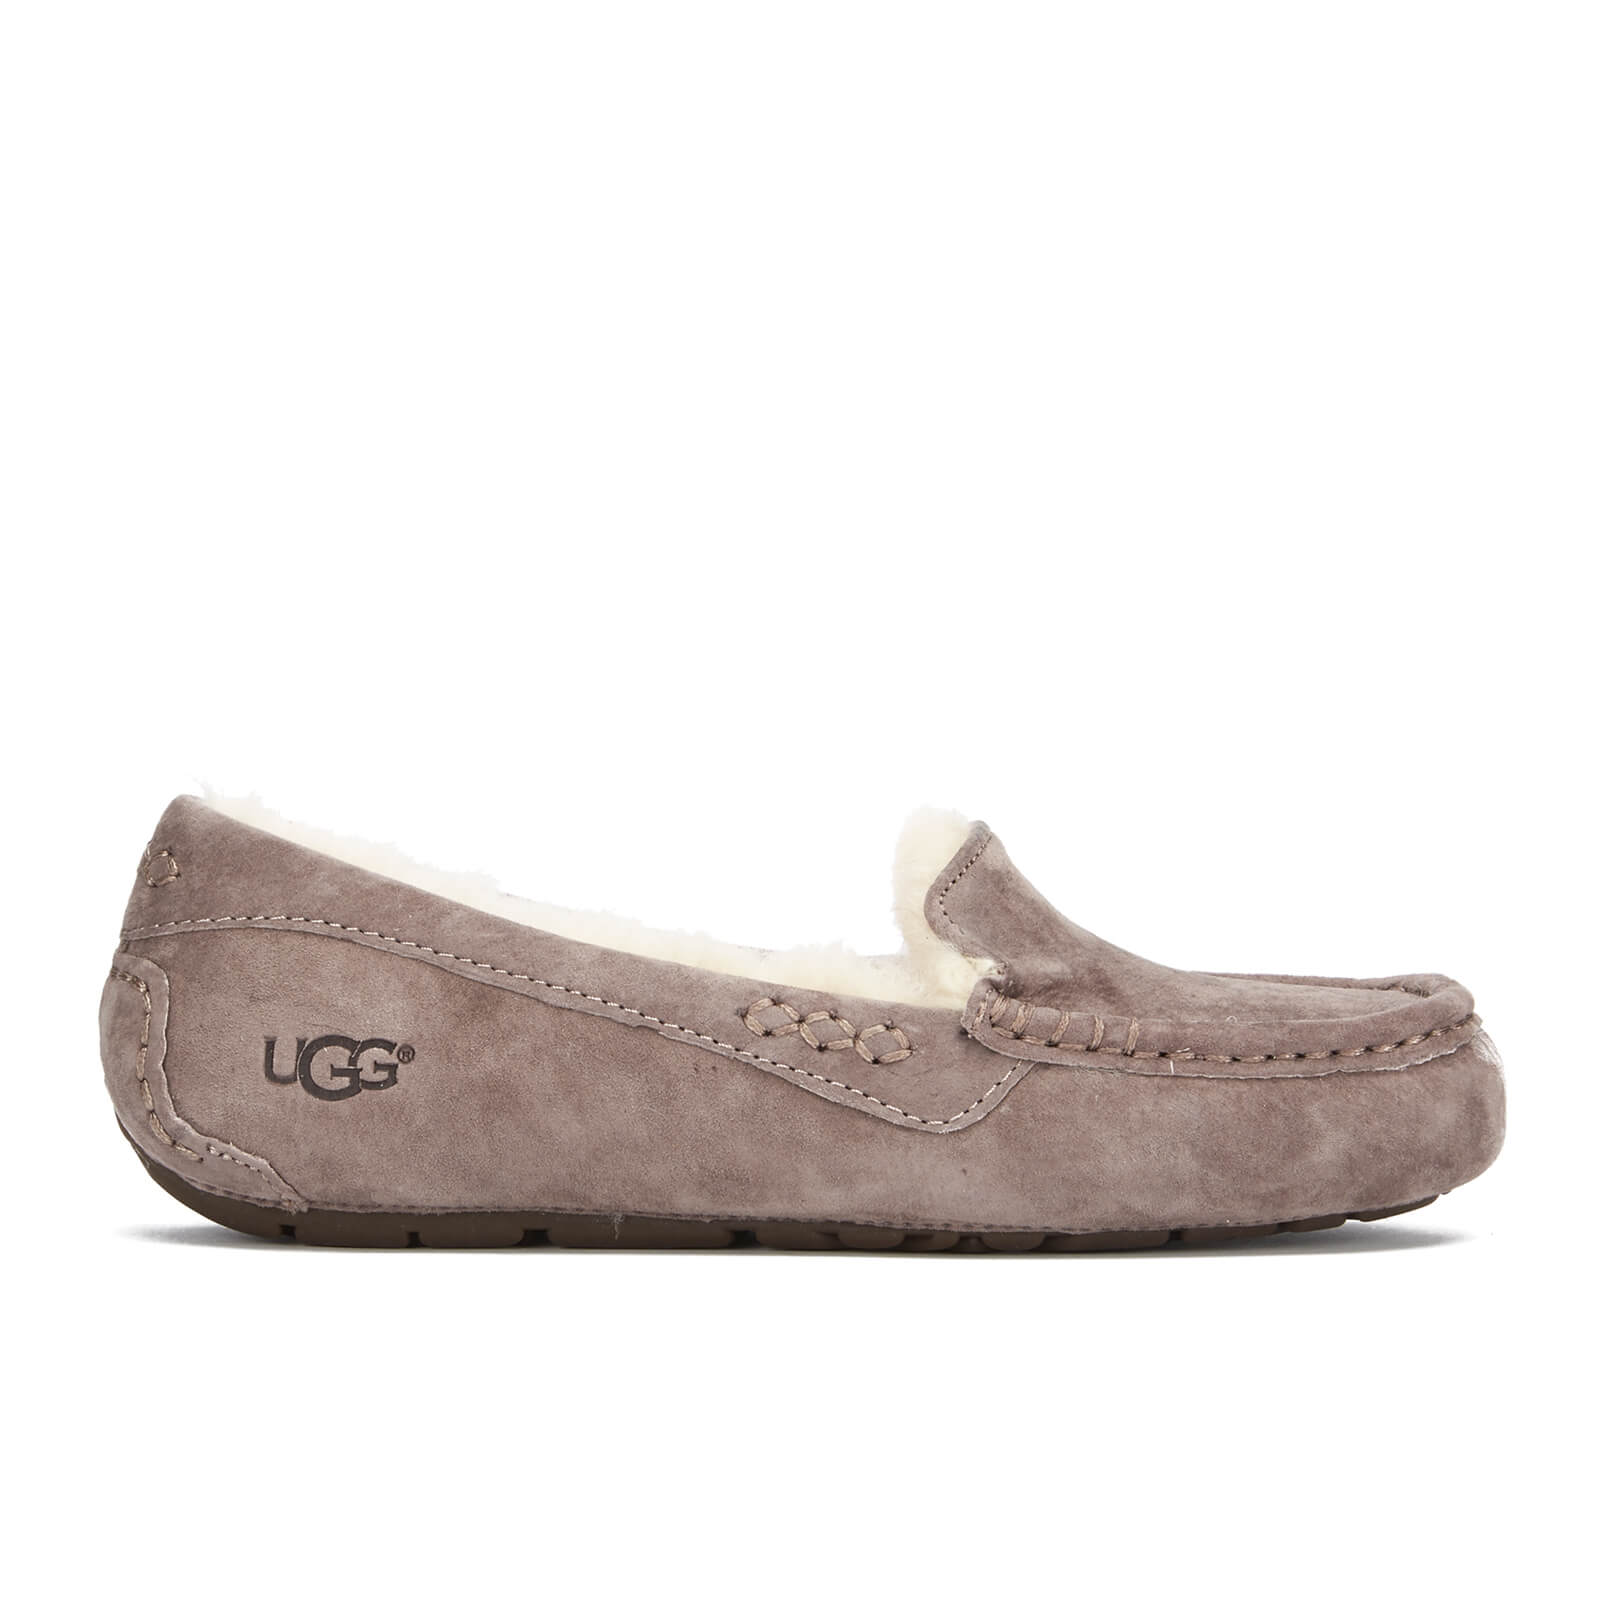 3be115b680a UGG Women's Ansley Moccasin Suede Slippers - Stormy Grey